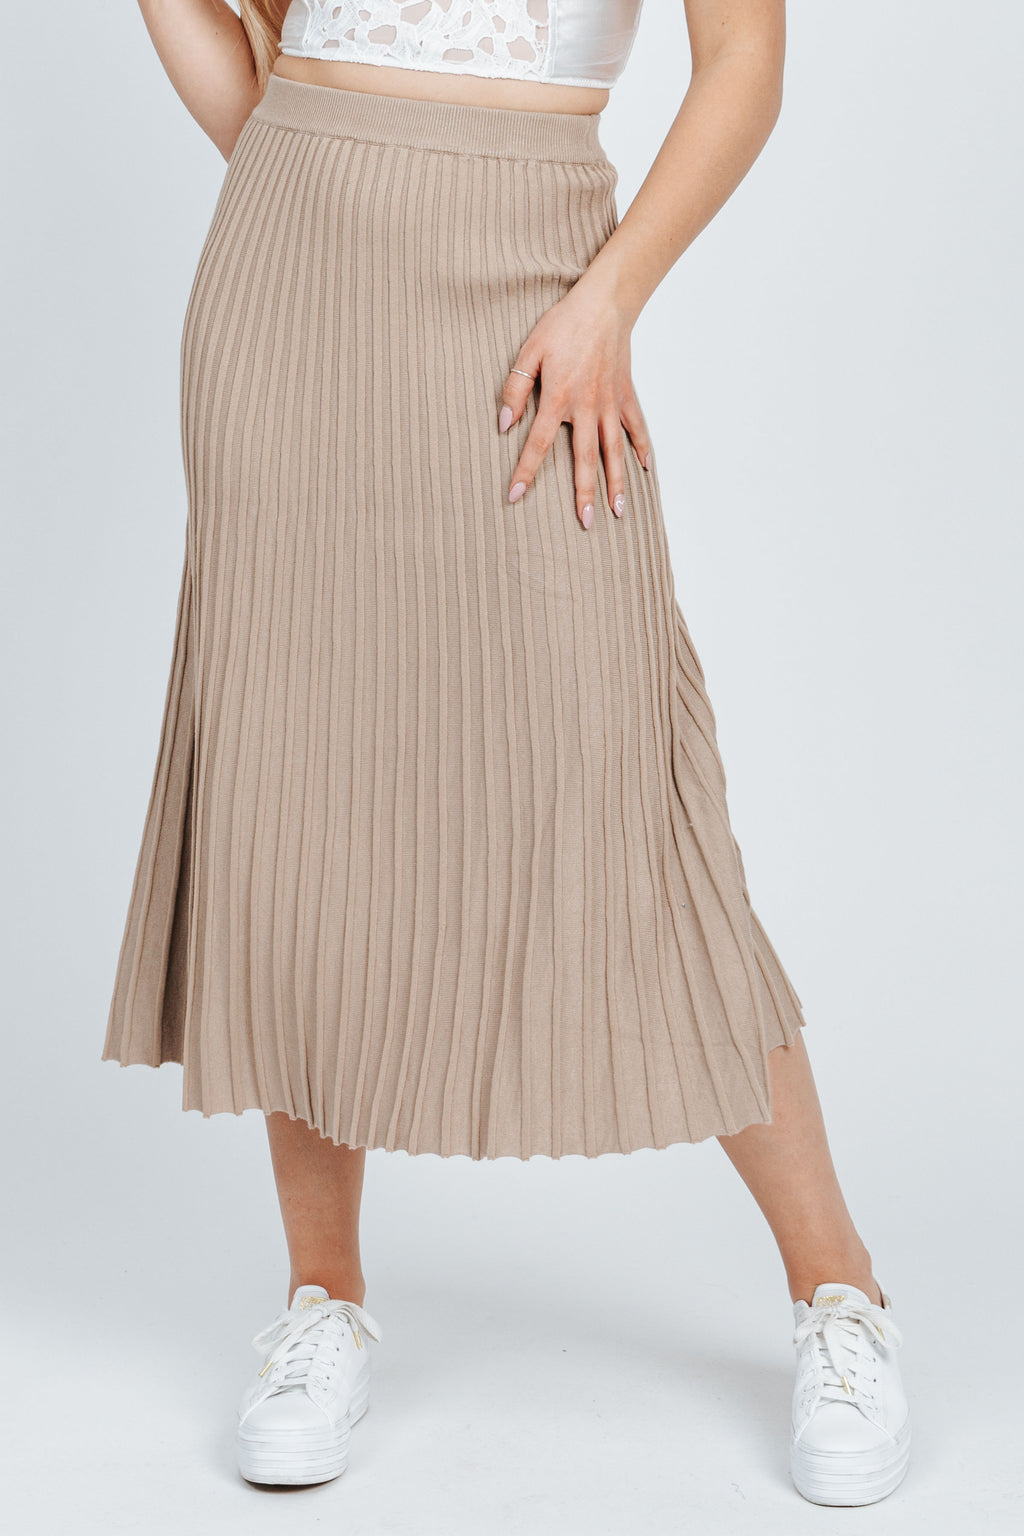 The Havilliard Pleated Skirt in Taupe, studio shoot; front view